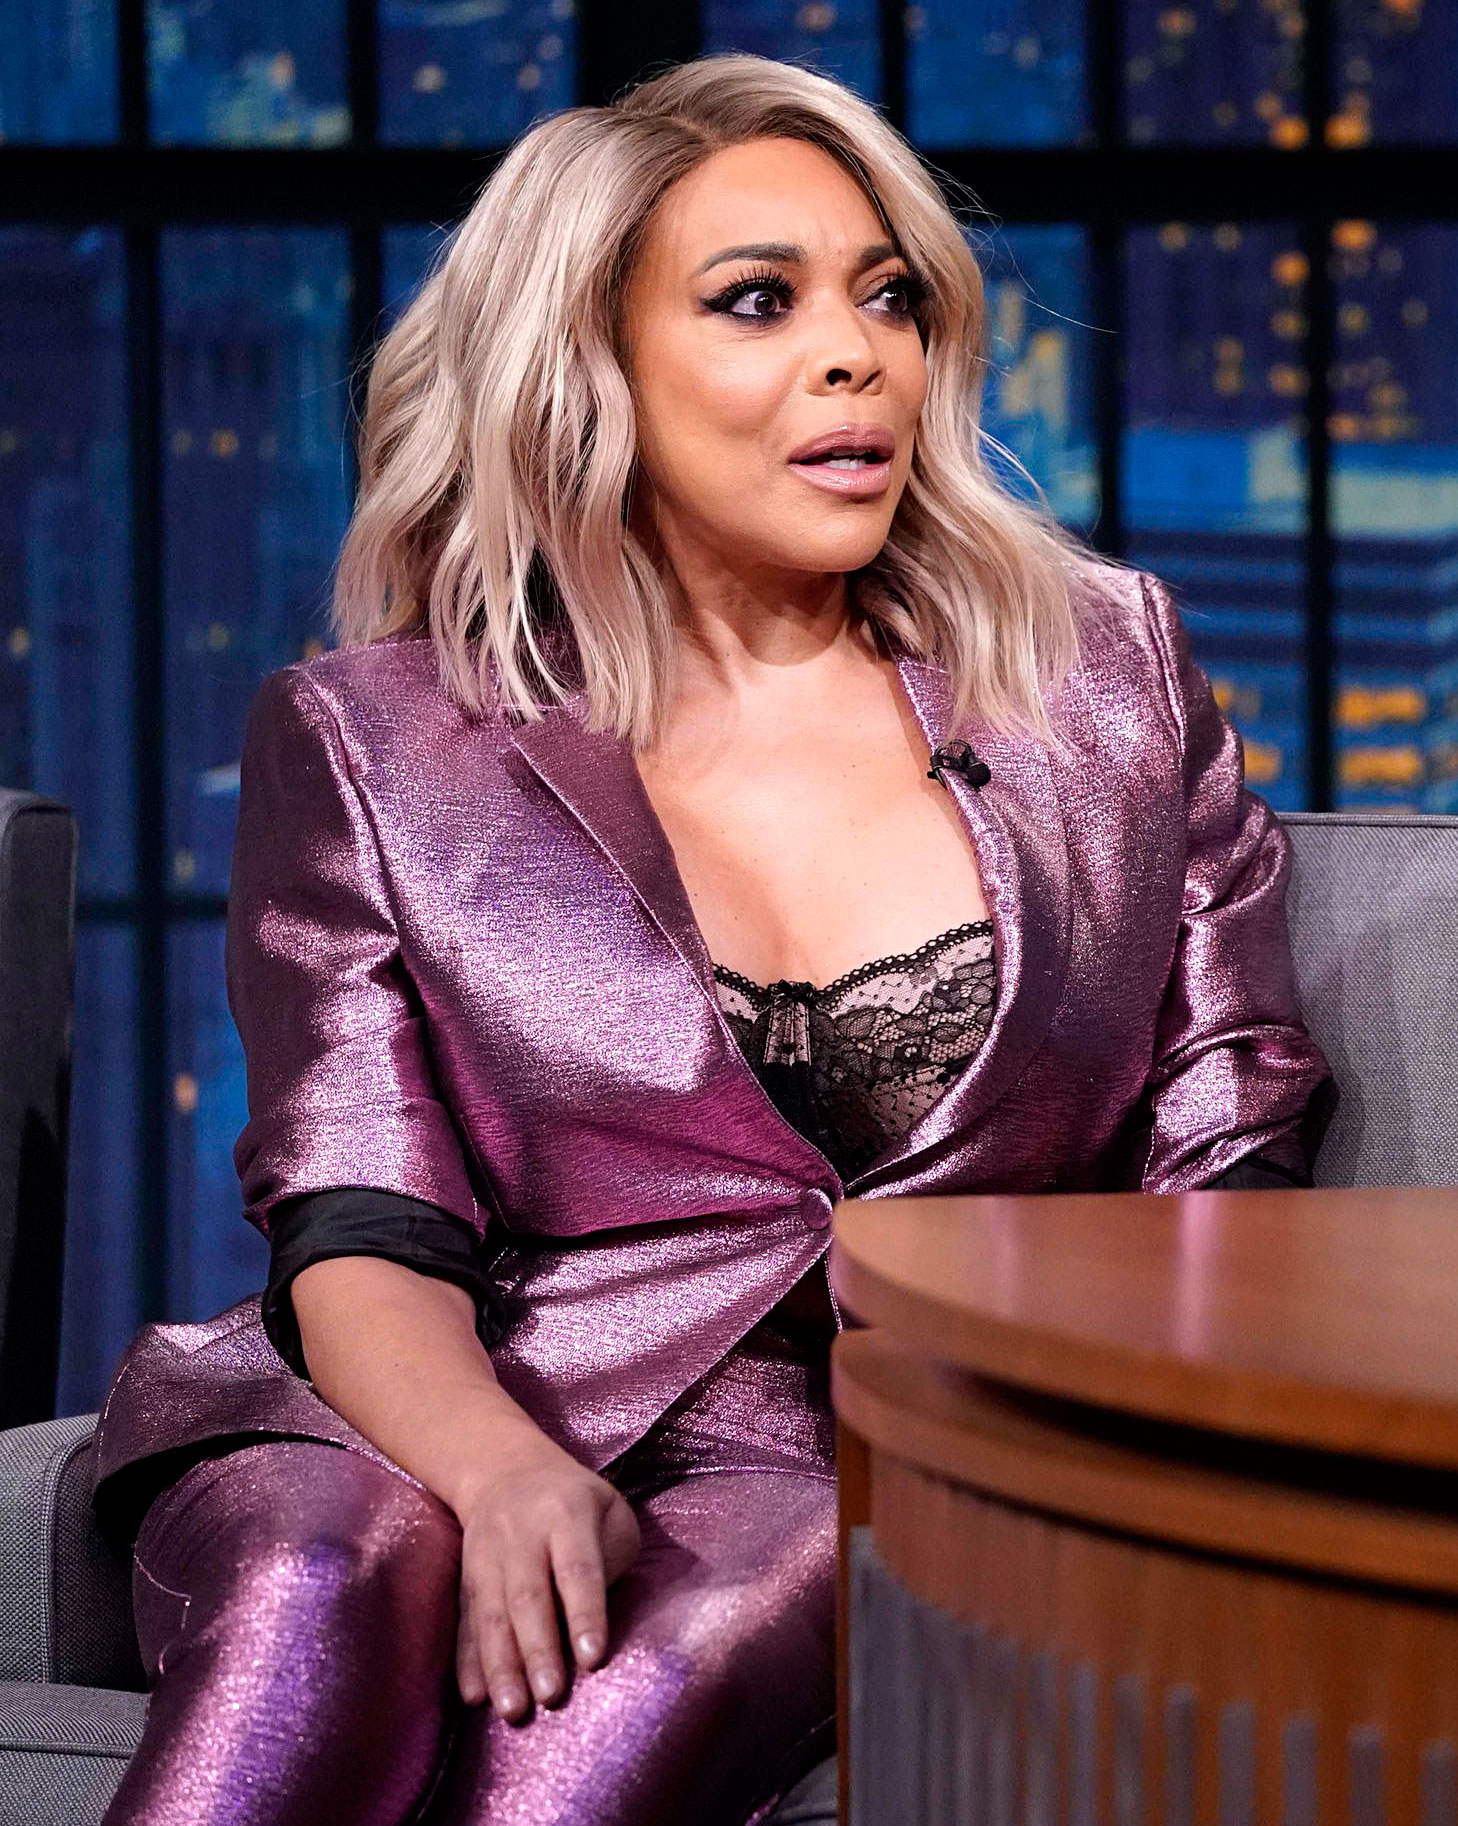 Wendy William's Sobriety Is a 'Work in Progress' - Wendy Williams during an interview on 'Late Night With Seth Meyers' on October 30, 2018.